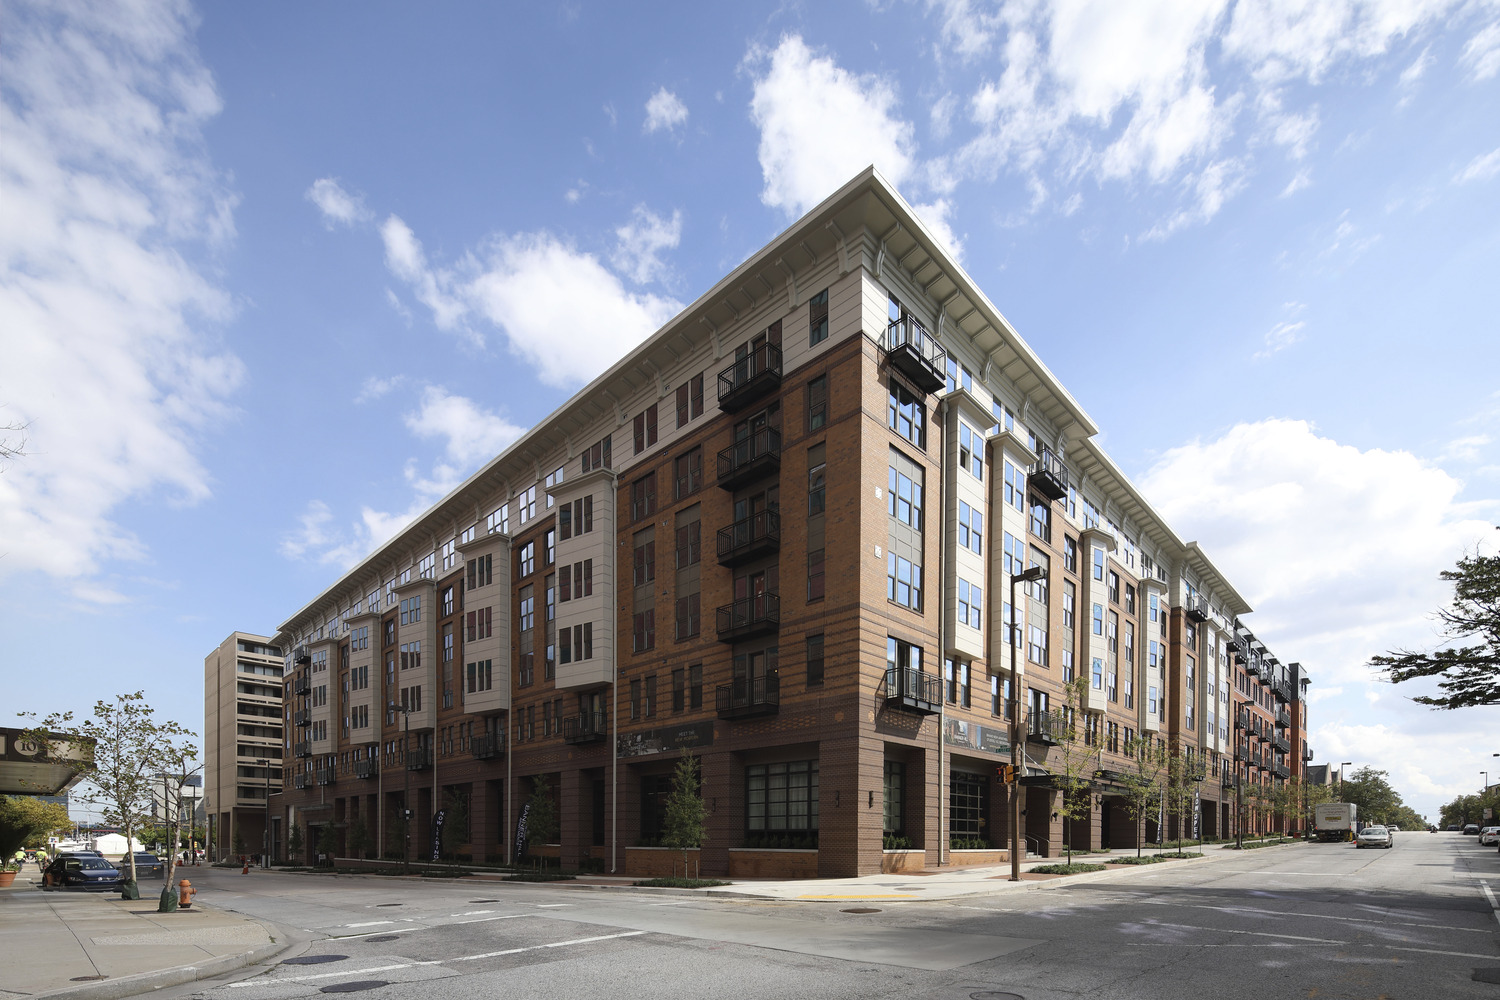 CBG builds Banner Hill, a 349-Unit Luxury Apartment Community with Below-Grade Parking in Baltimore, MD - Image #1